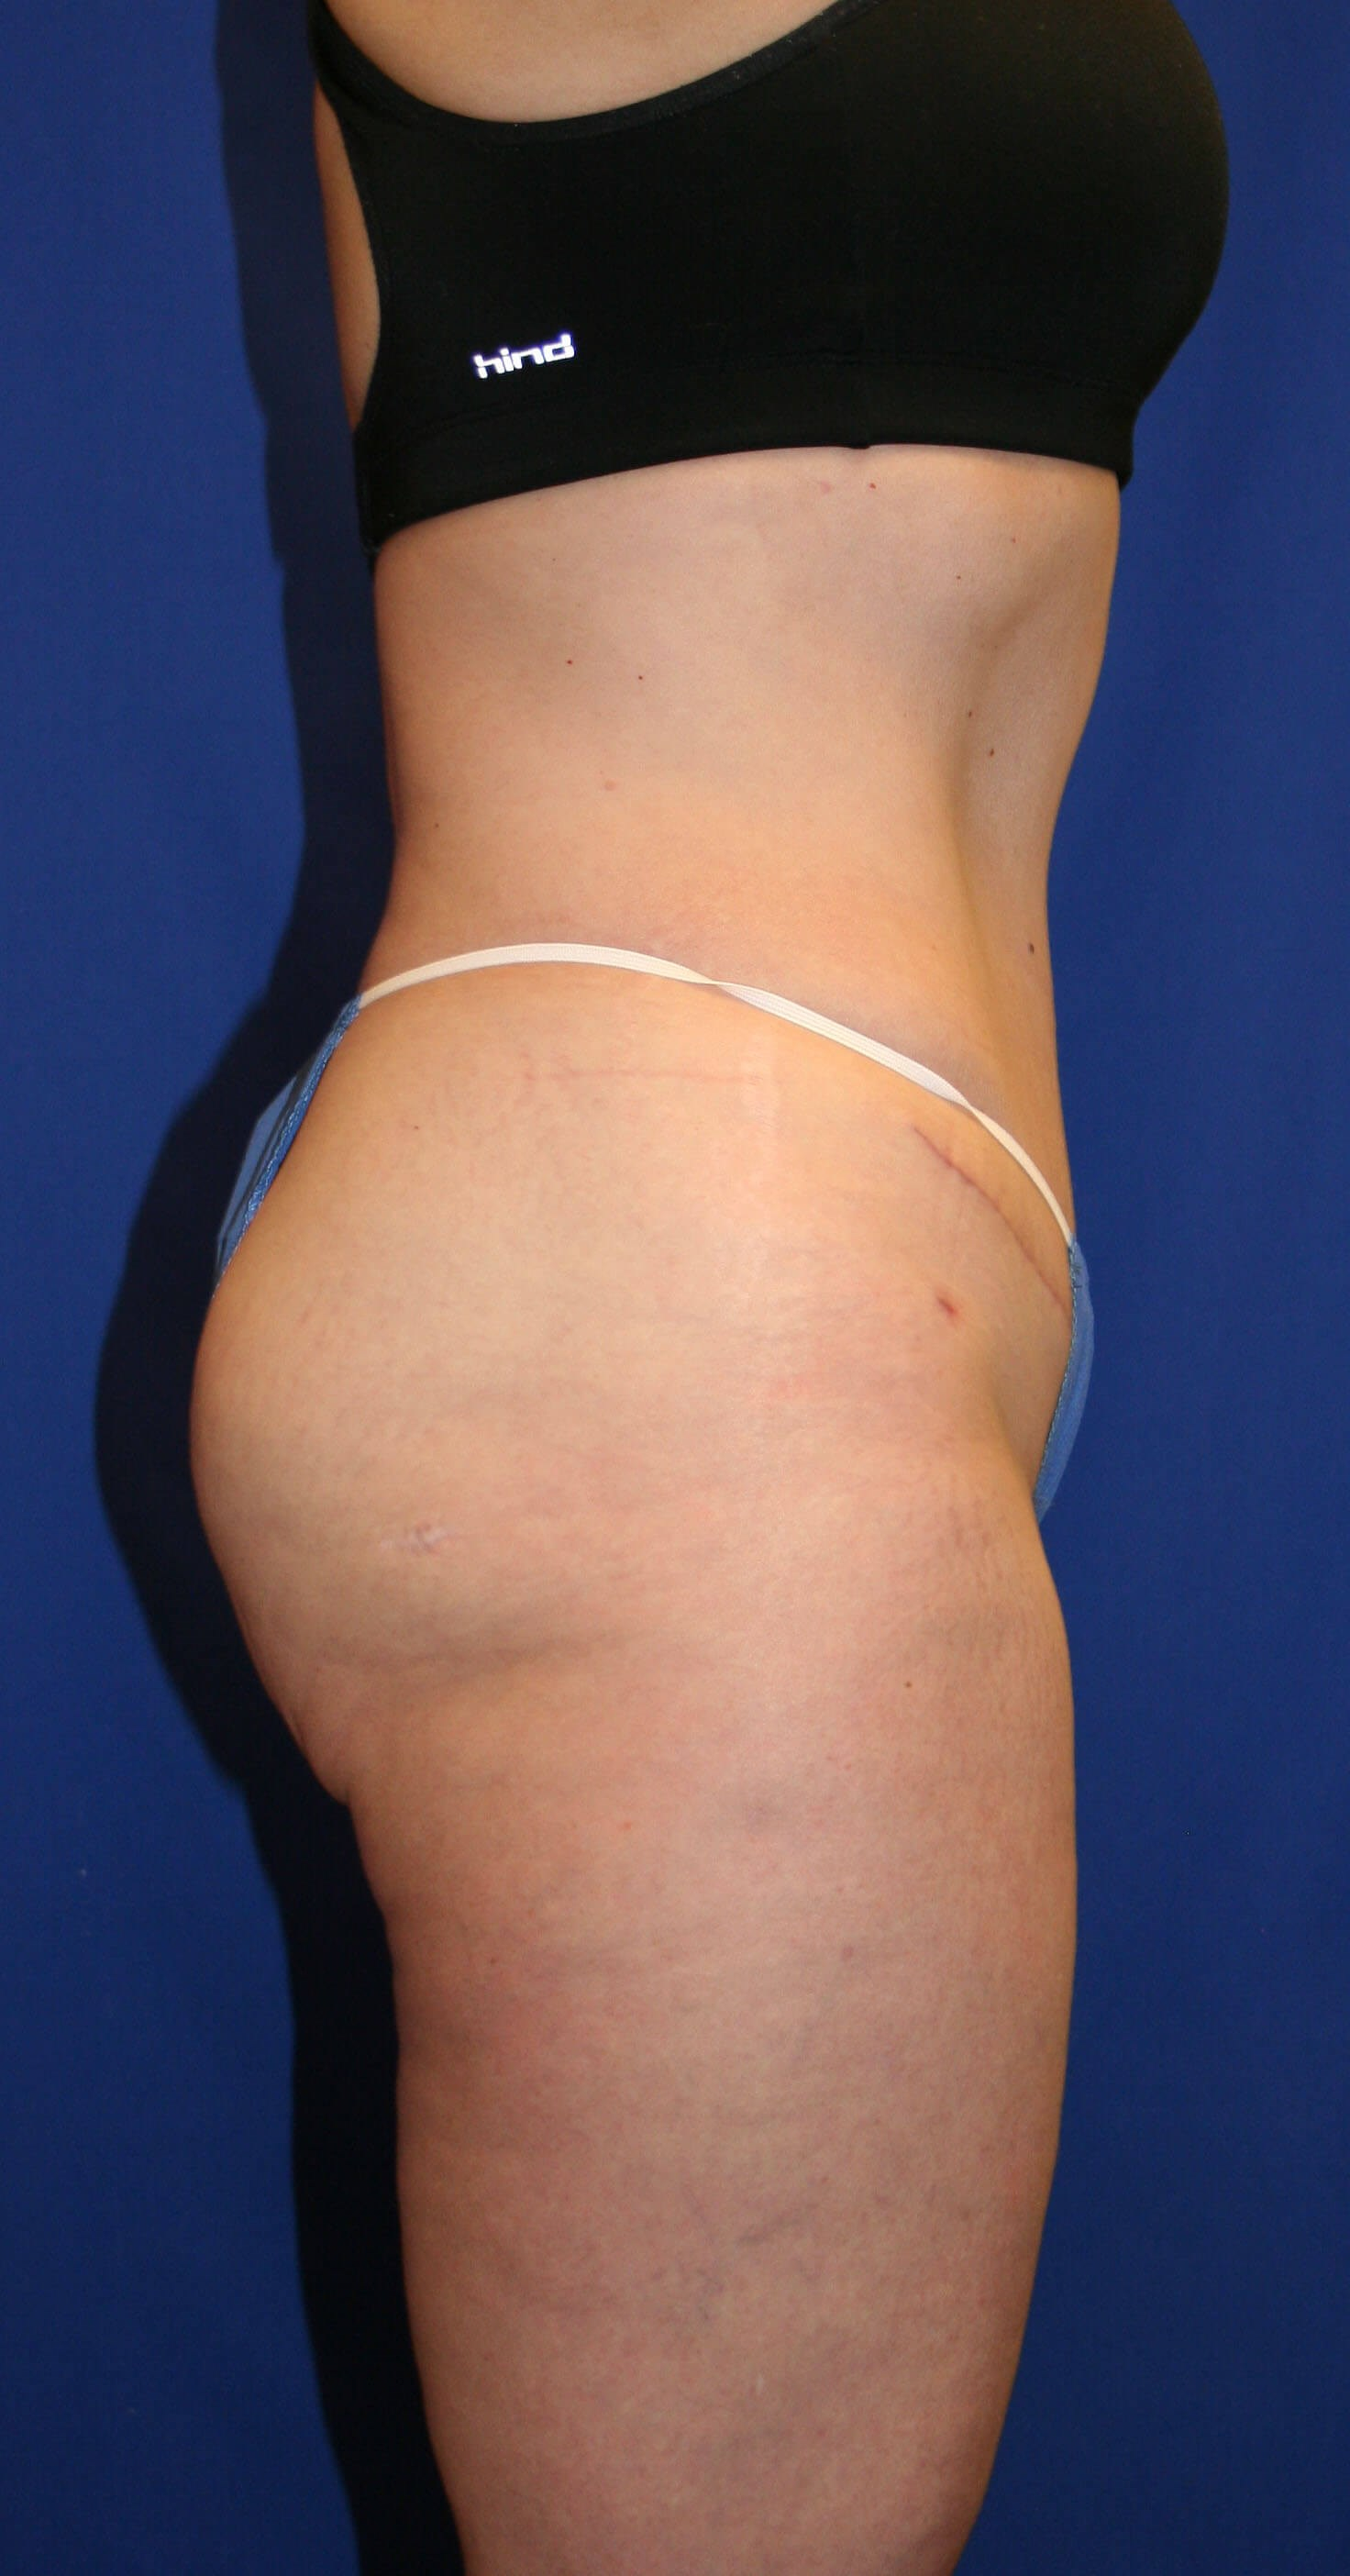 Tummy Tuck & Liposuction After